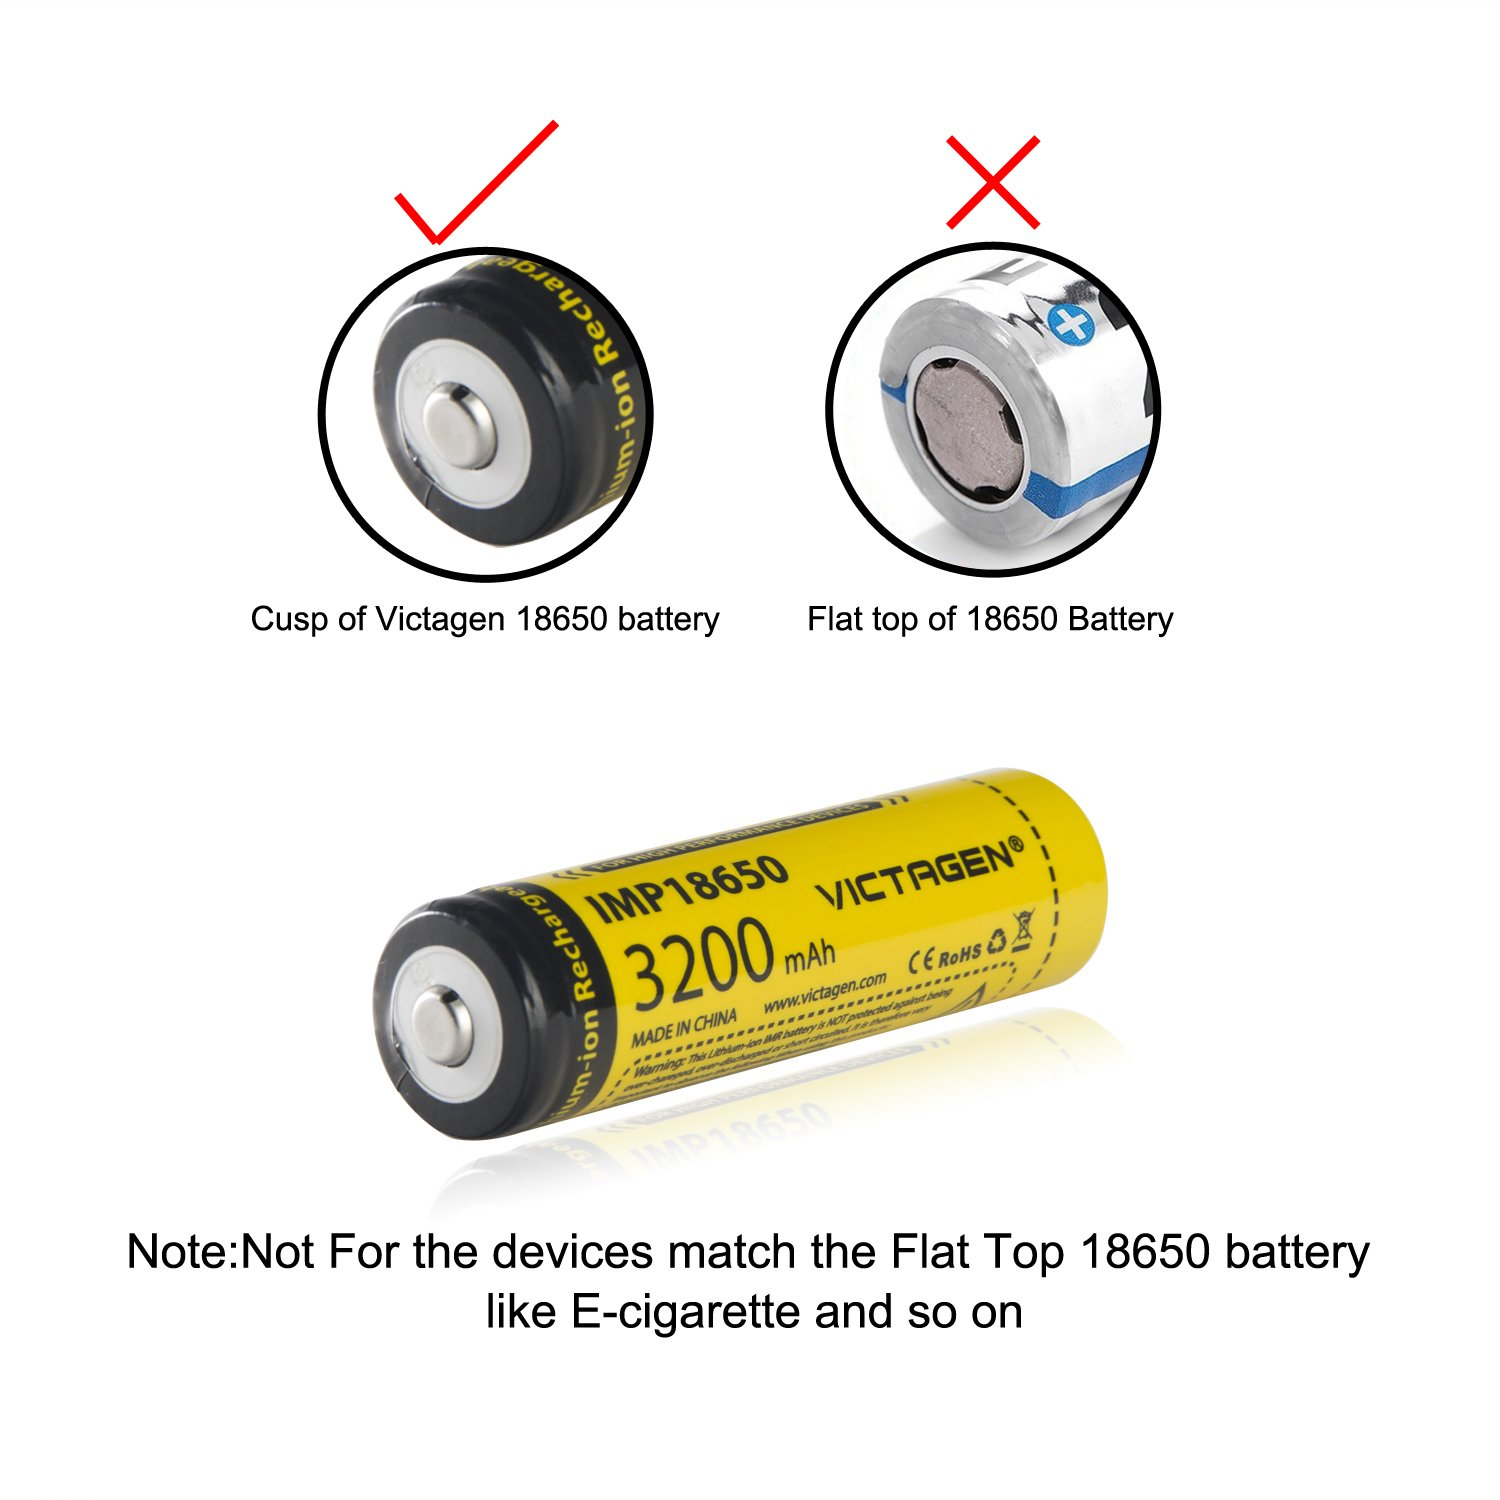 Victagen 18650 Lithium Battery (2 Packs) and Battery Charger, Universal Smart Charger For Rechargeable Batteries Li-ion 26650 18650/IMR/LiFePO4/Ni-MH/Ni-Cd 22650 18490 18350 17670 17500 16340 AA AAA C by Victagen (Image #2)